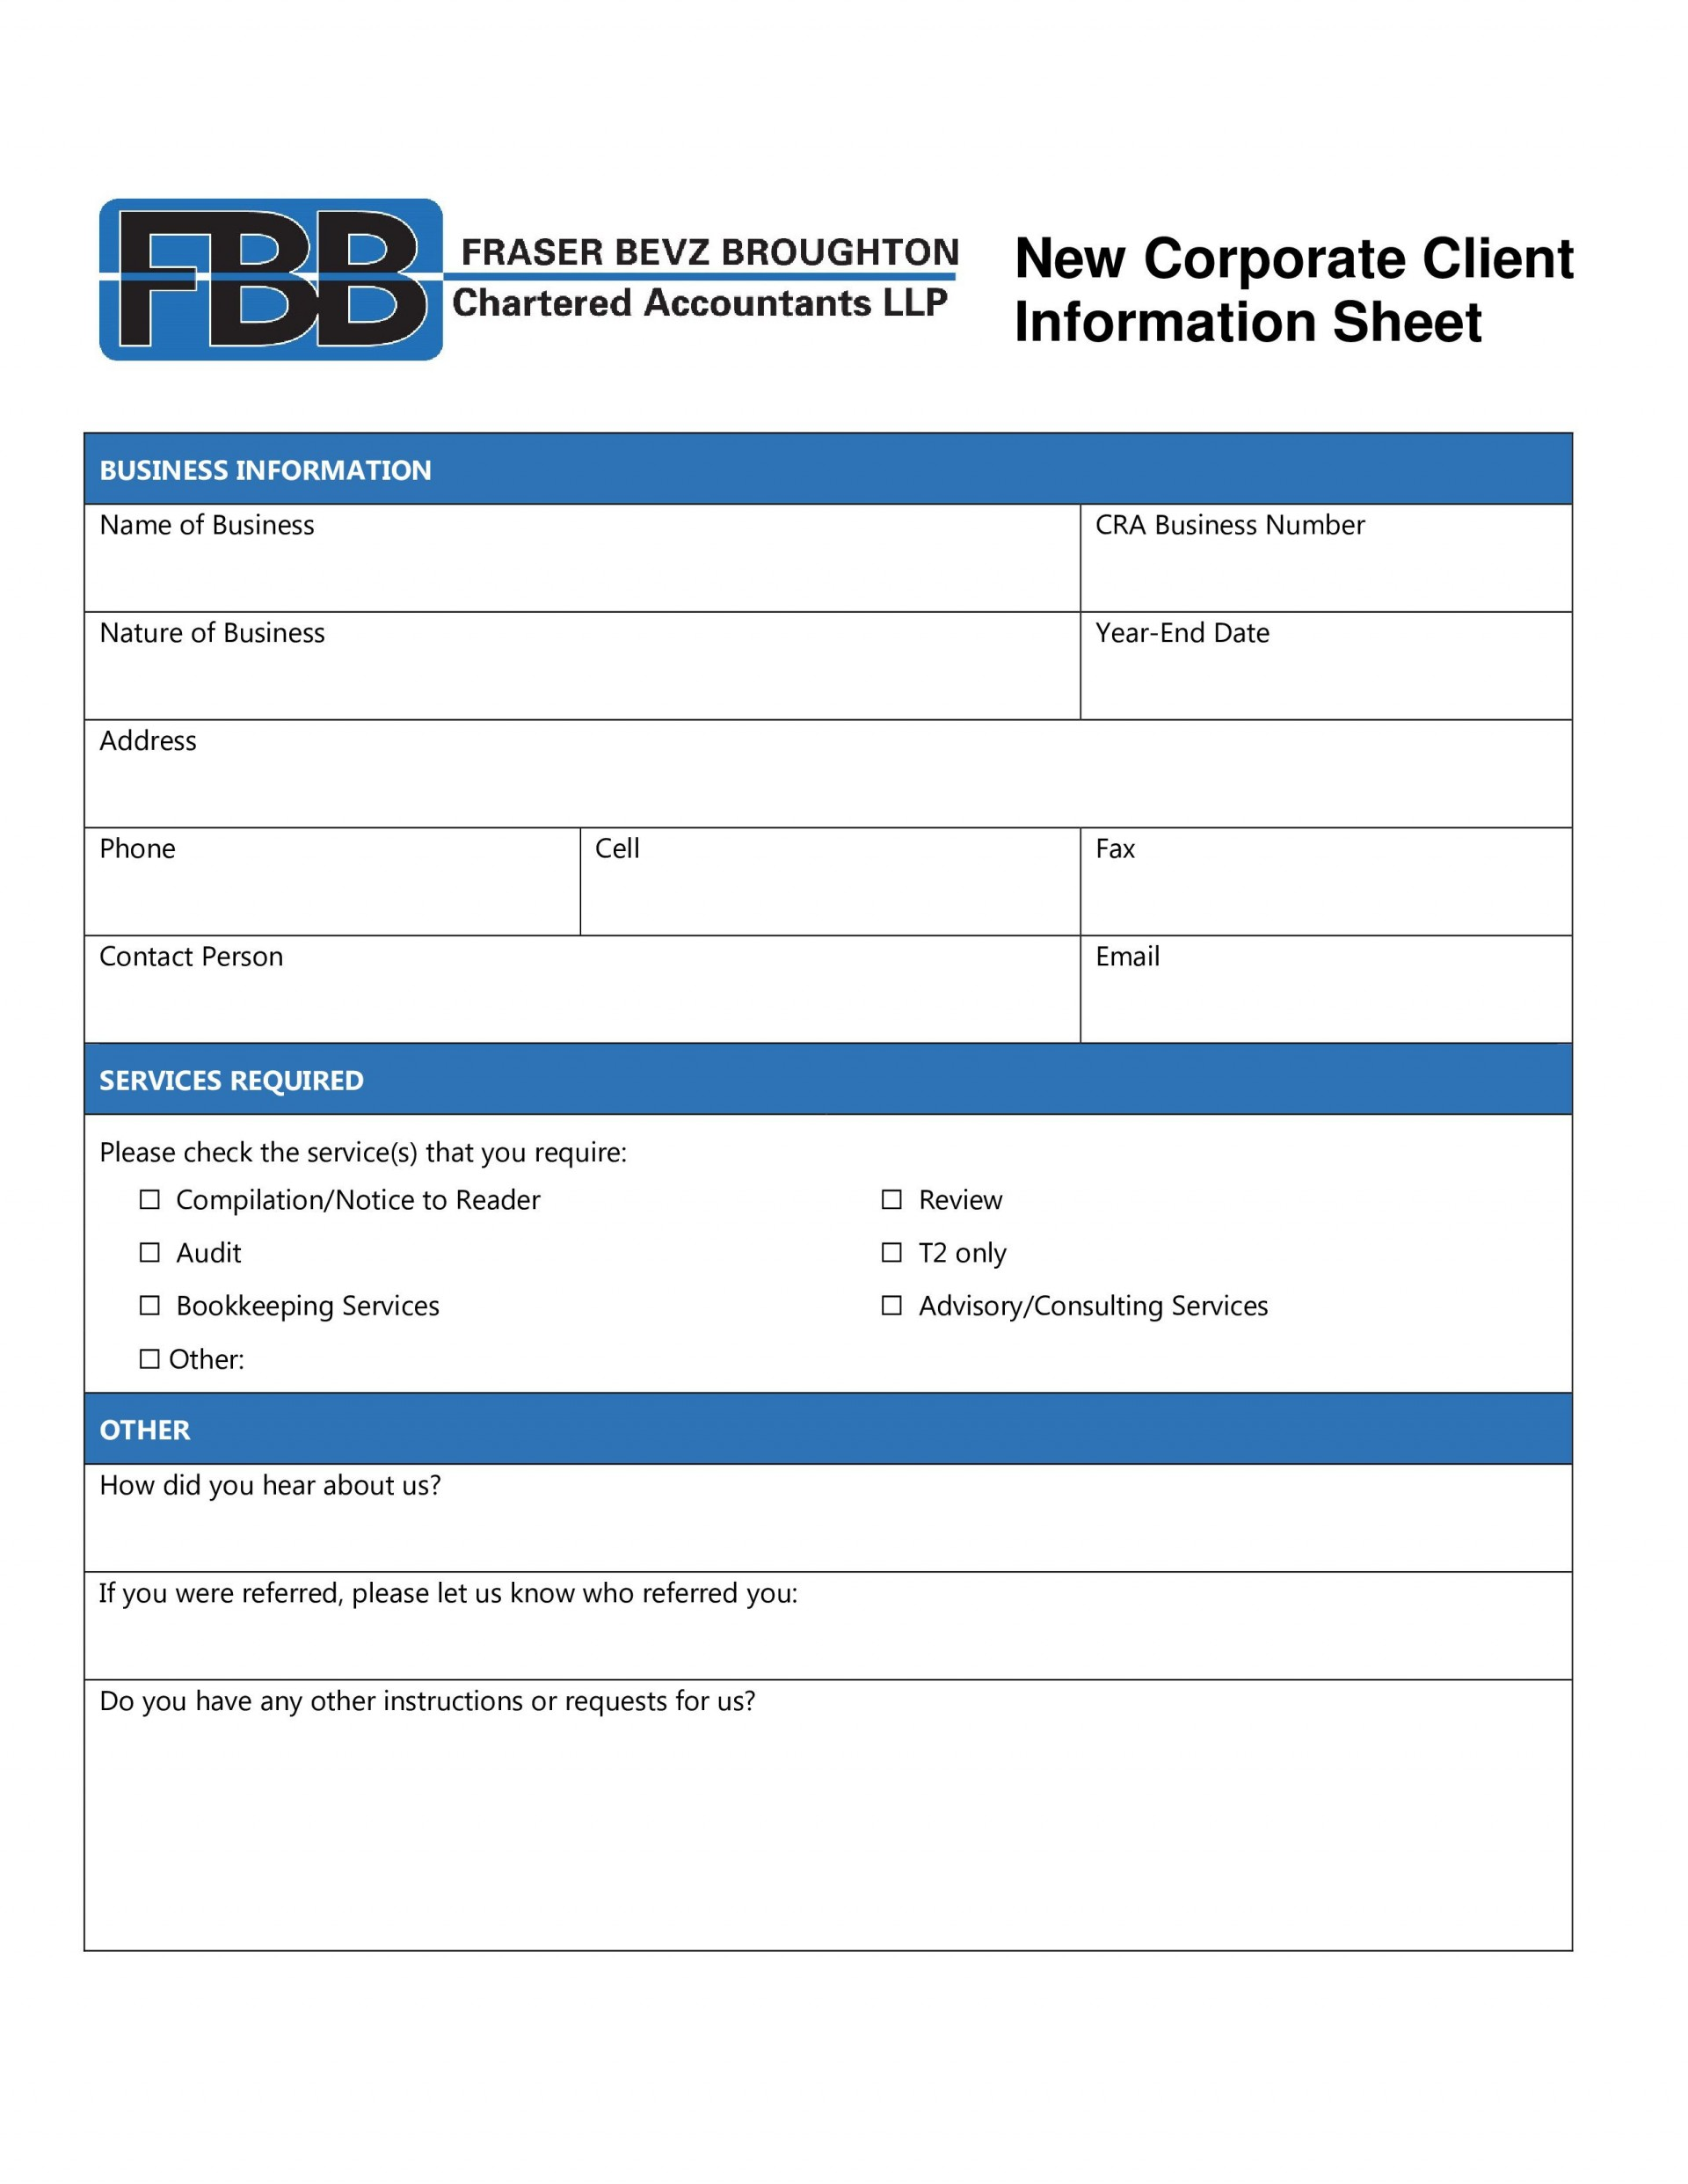 001 Staggering Customer Information Sheet Template Image  New Info Excel Spreadsheet1920